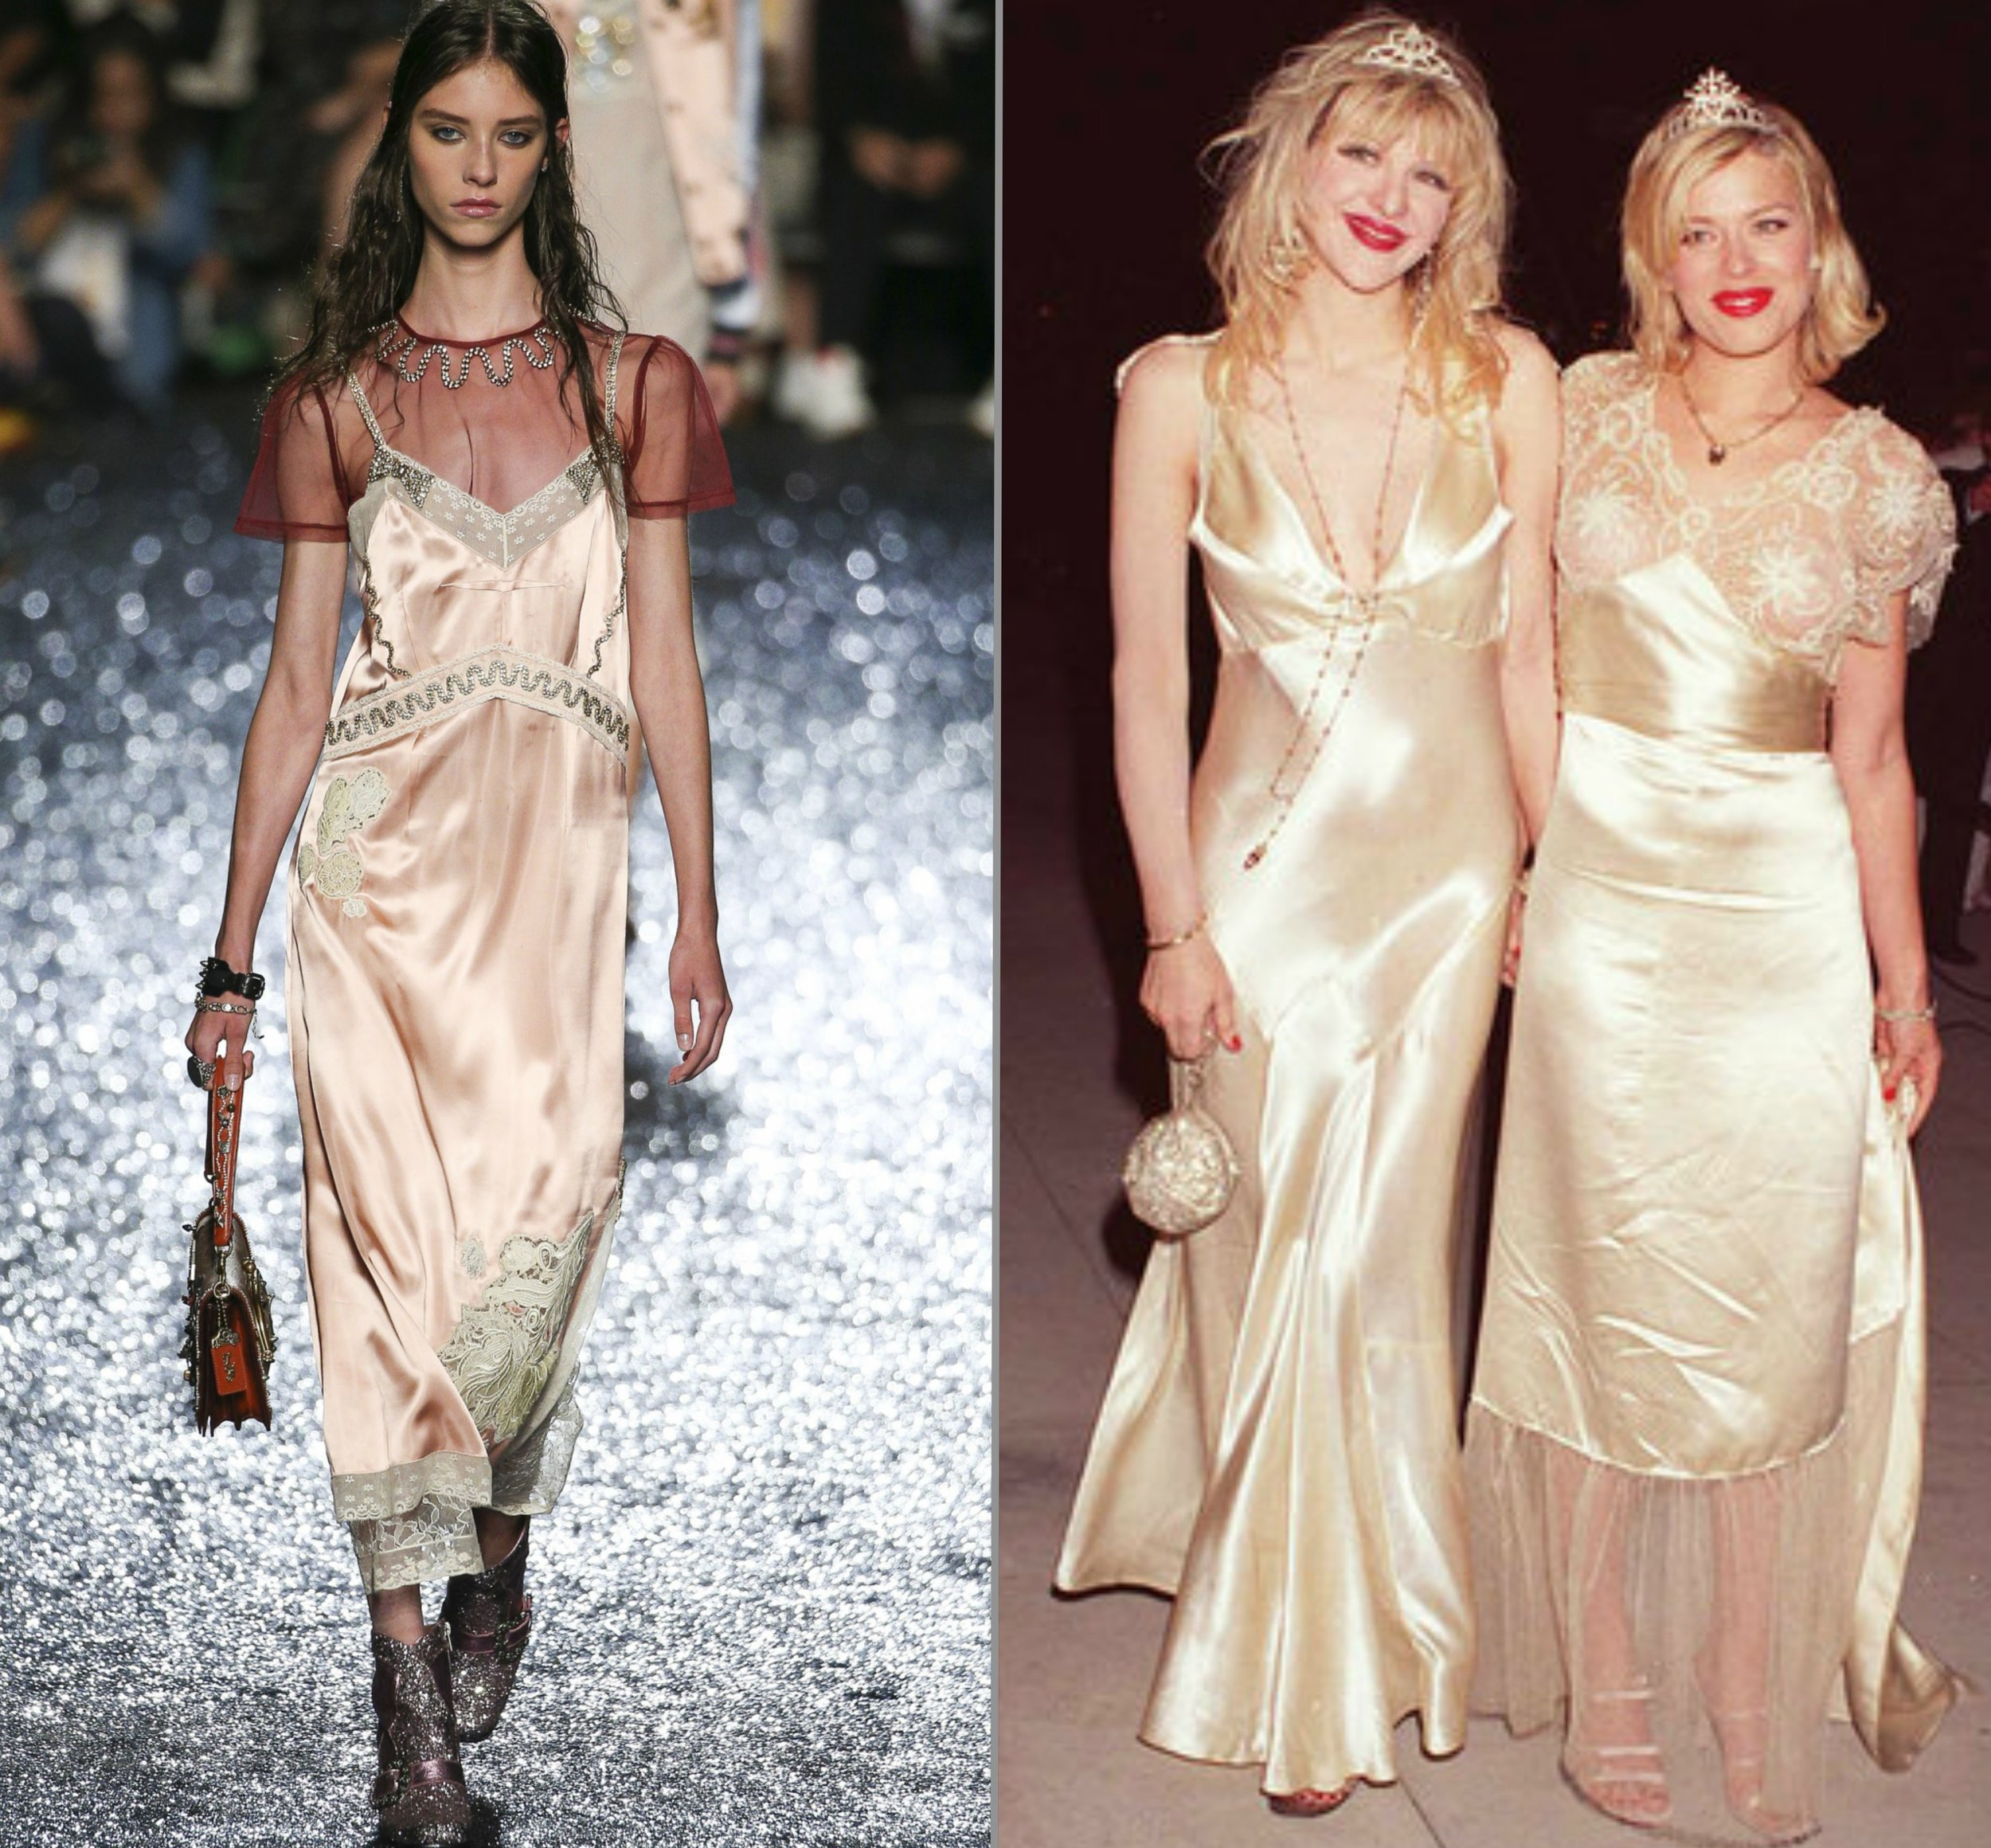 Coach 1941 SS18 | Courtney Love & Amanda de Cadenet 1995